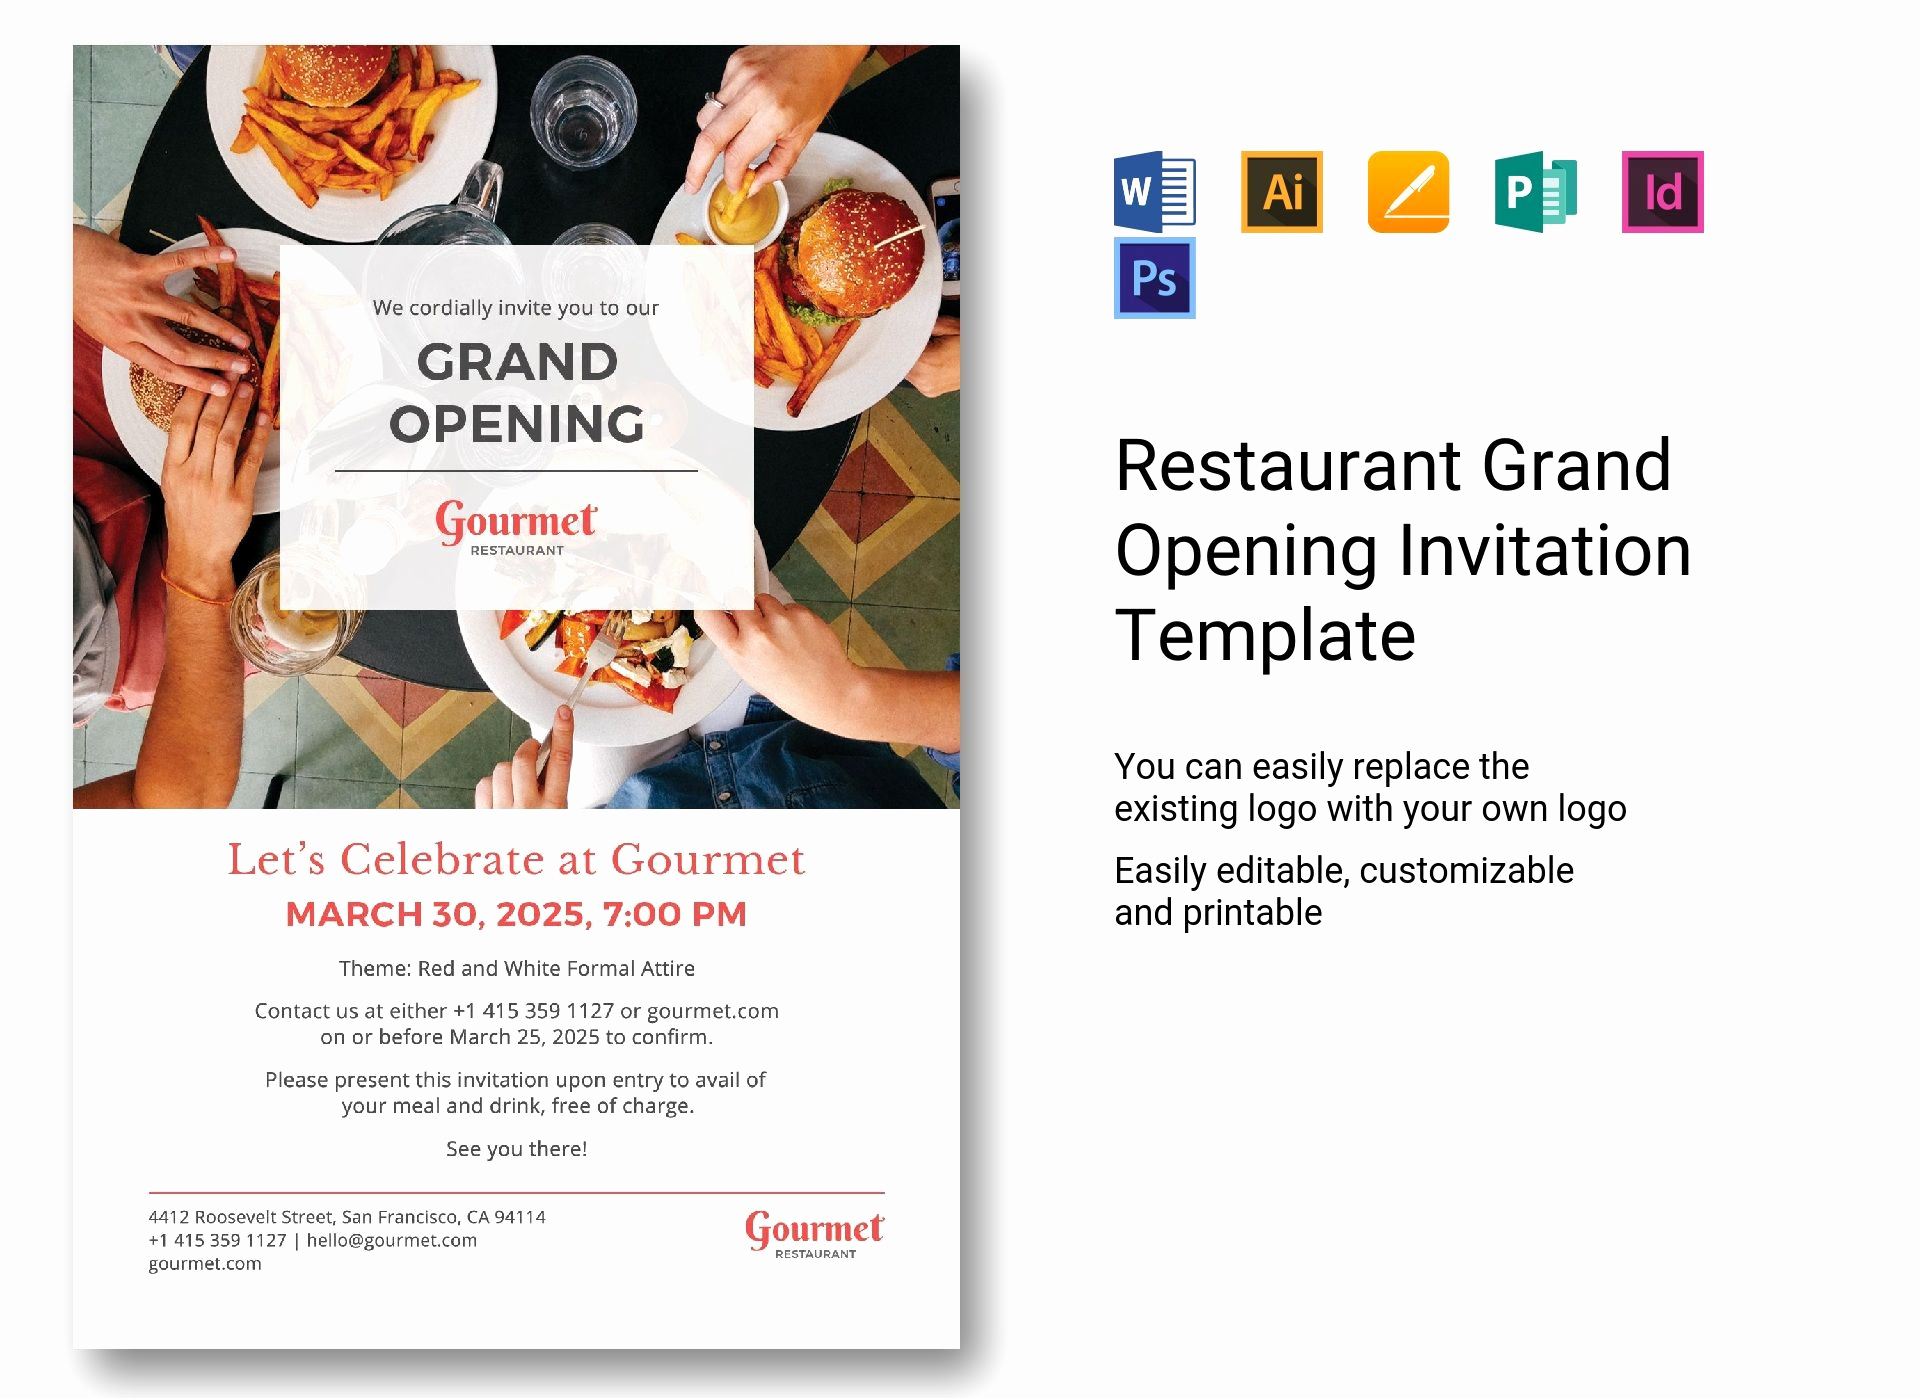 Grand Opening Invitation Wording Luxury Restaurant Grand Opening Invitation Template In Psd Word